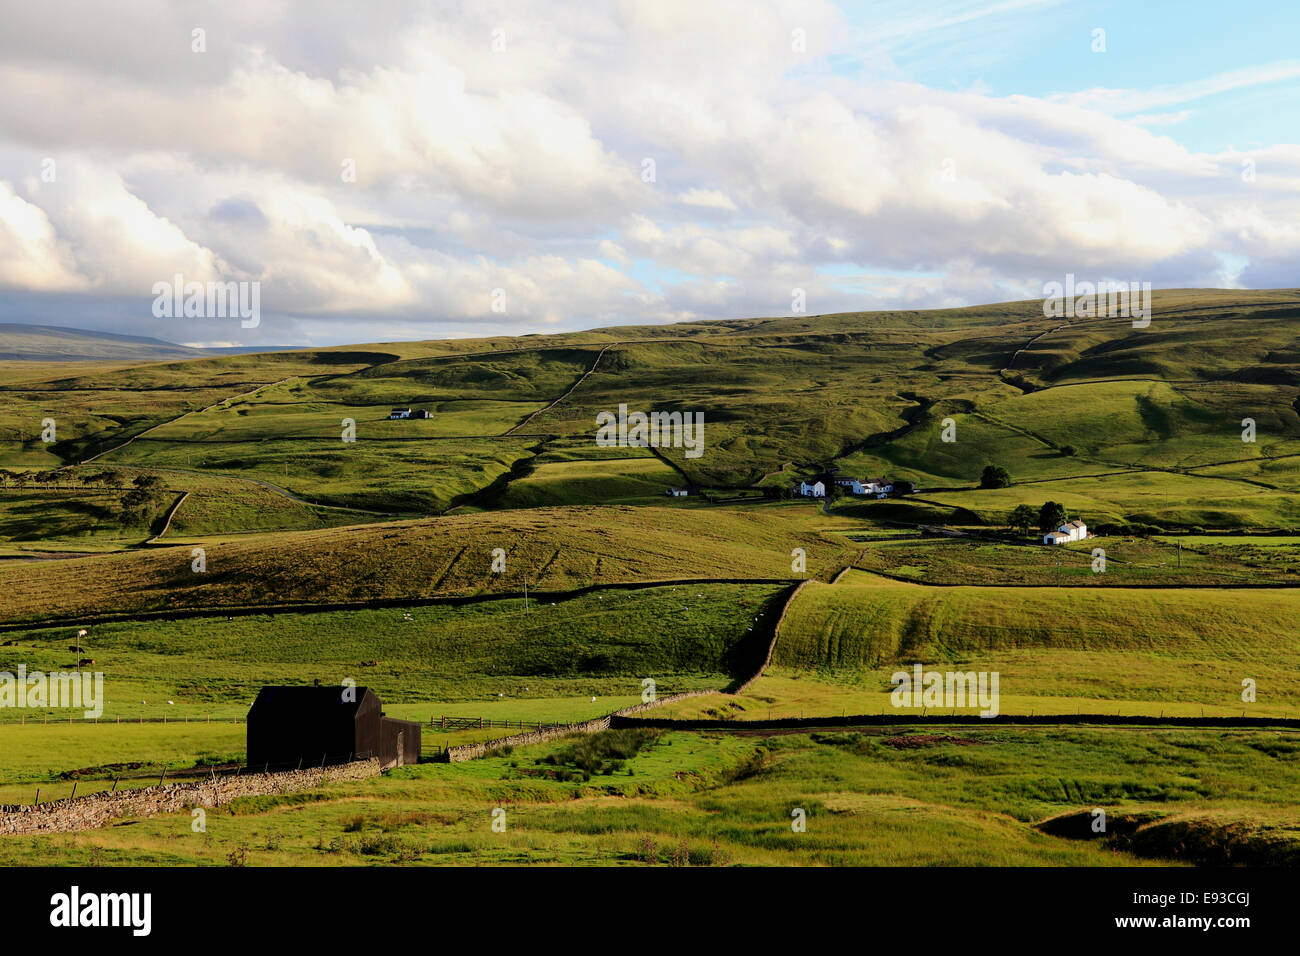 3237. Upper Teesdale, Durham, UK - Stock Image